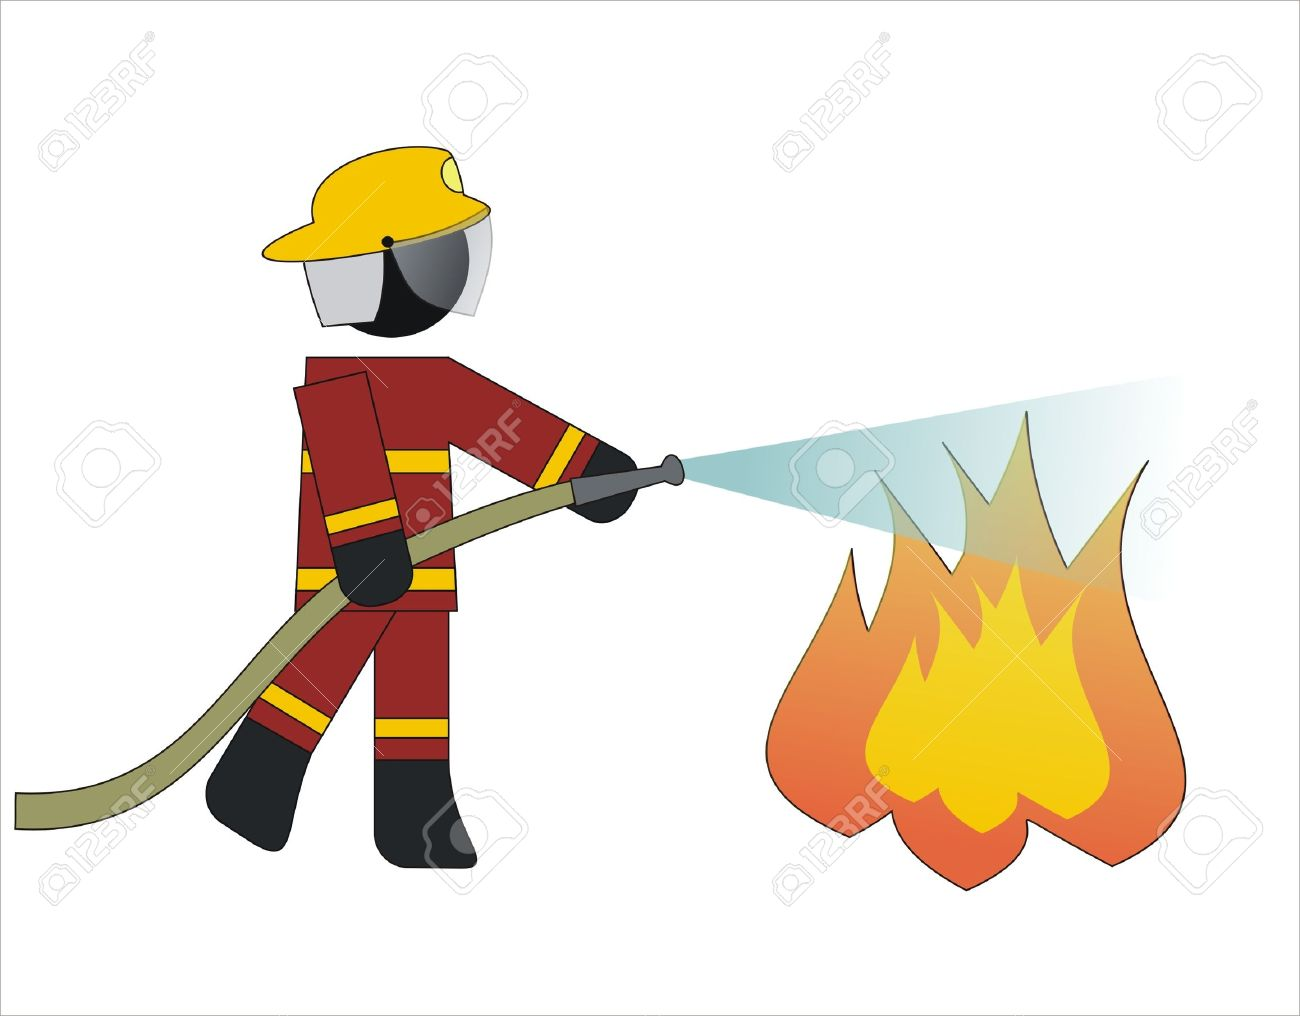 Put out fire clipart.